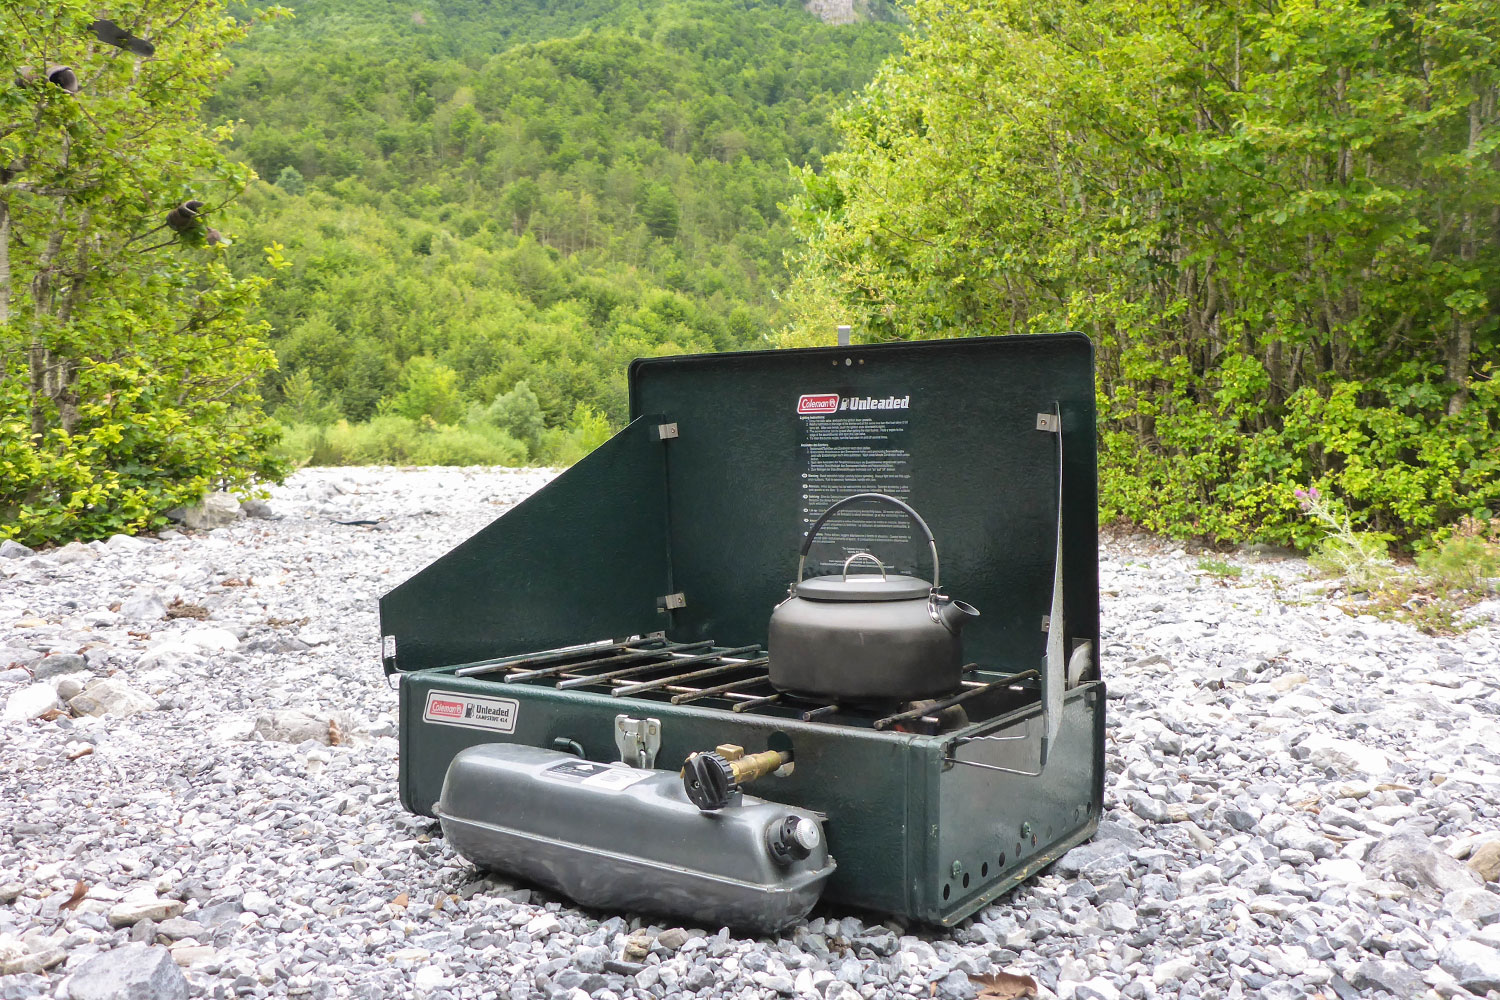 Coleman unleaded two-burner stove review